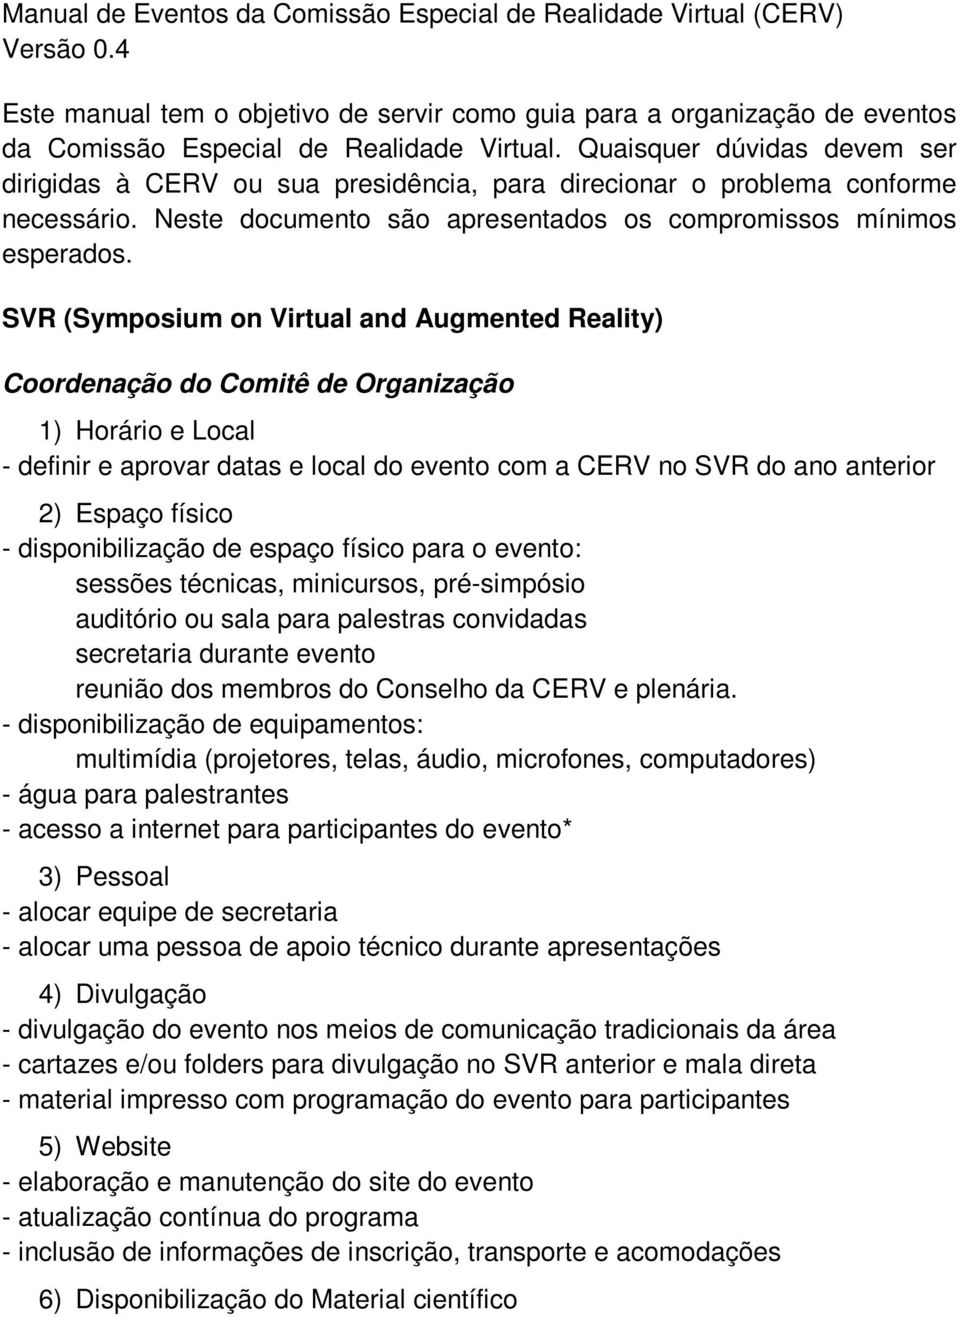 SVR (Symposium on Virtual and Augmented Reality) Coordenação do Comitê de Organização 1) Horário e Local - definir e aprovar datas e local do evento com a CERV no SVR do ano anterior 2) Espaço físico